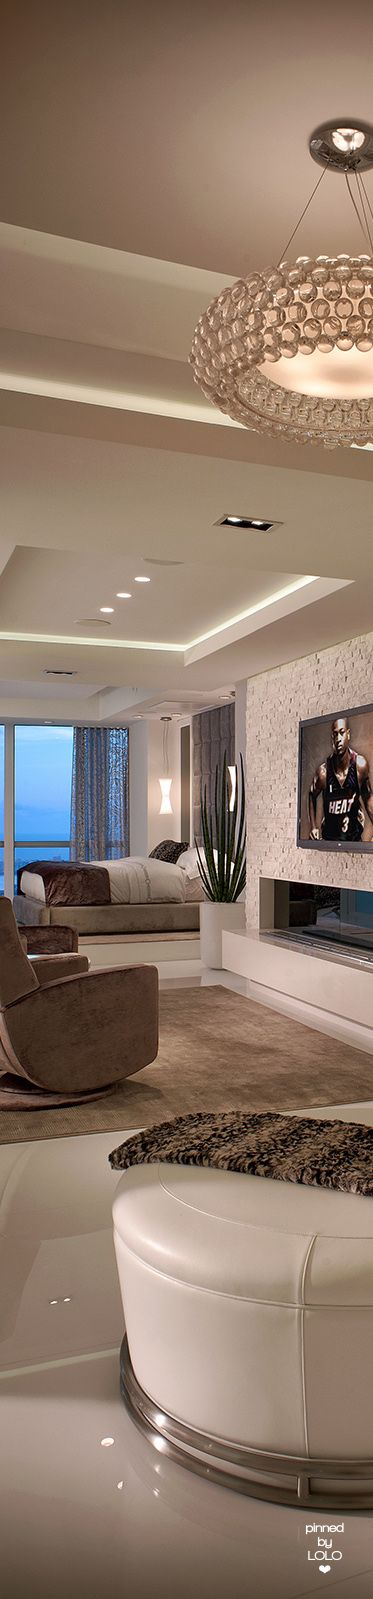 Bedroom Decorating Ideas For Your Master Bedroom